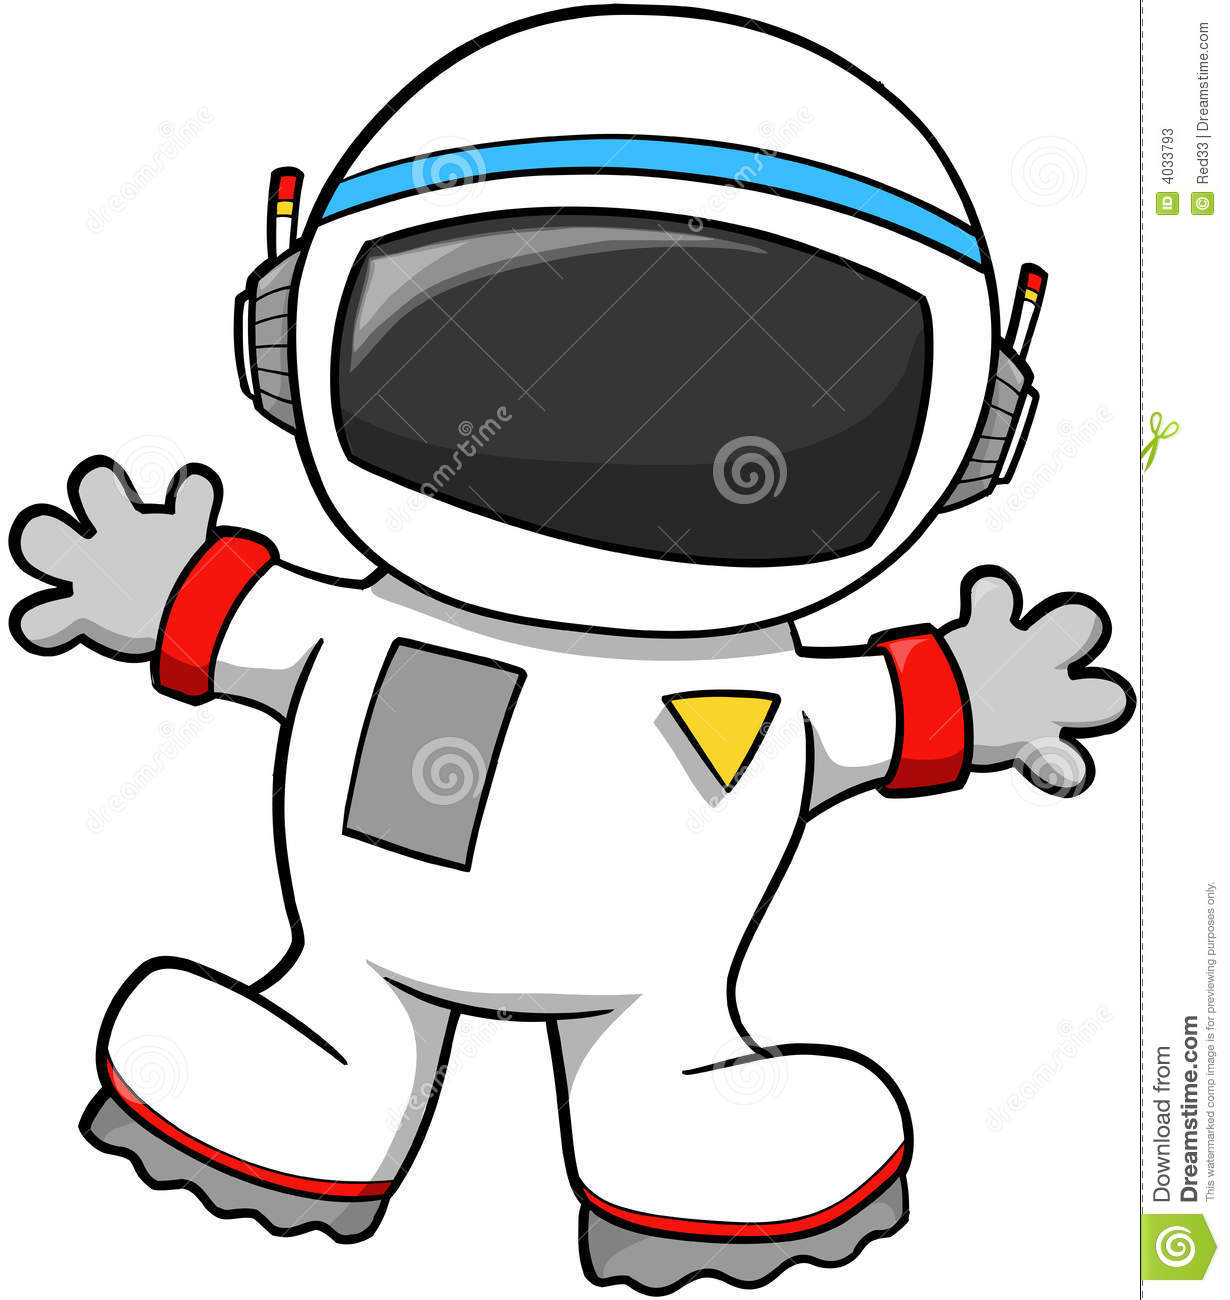 Astronaot clipart picture freeuse stock Astronaut Clipart | Free download best Astronaut Clipart on ... picture freeuse stock